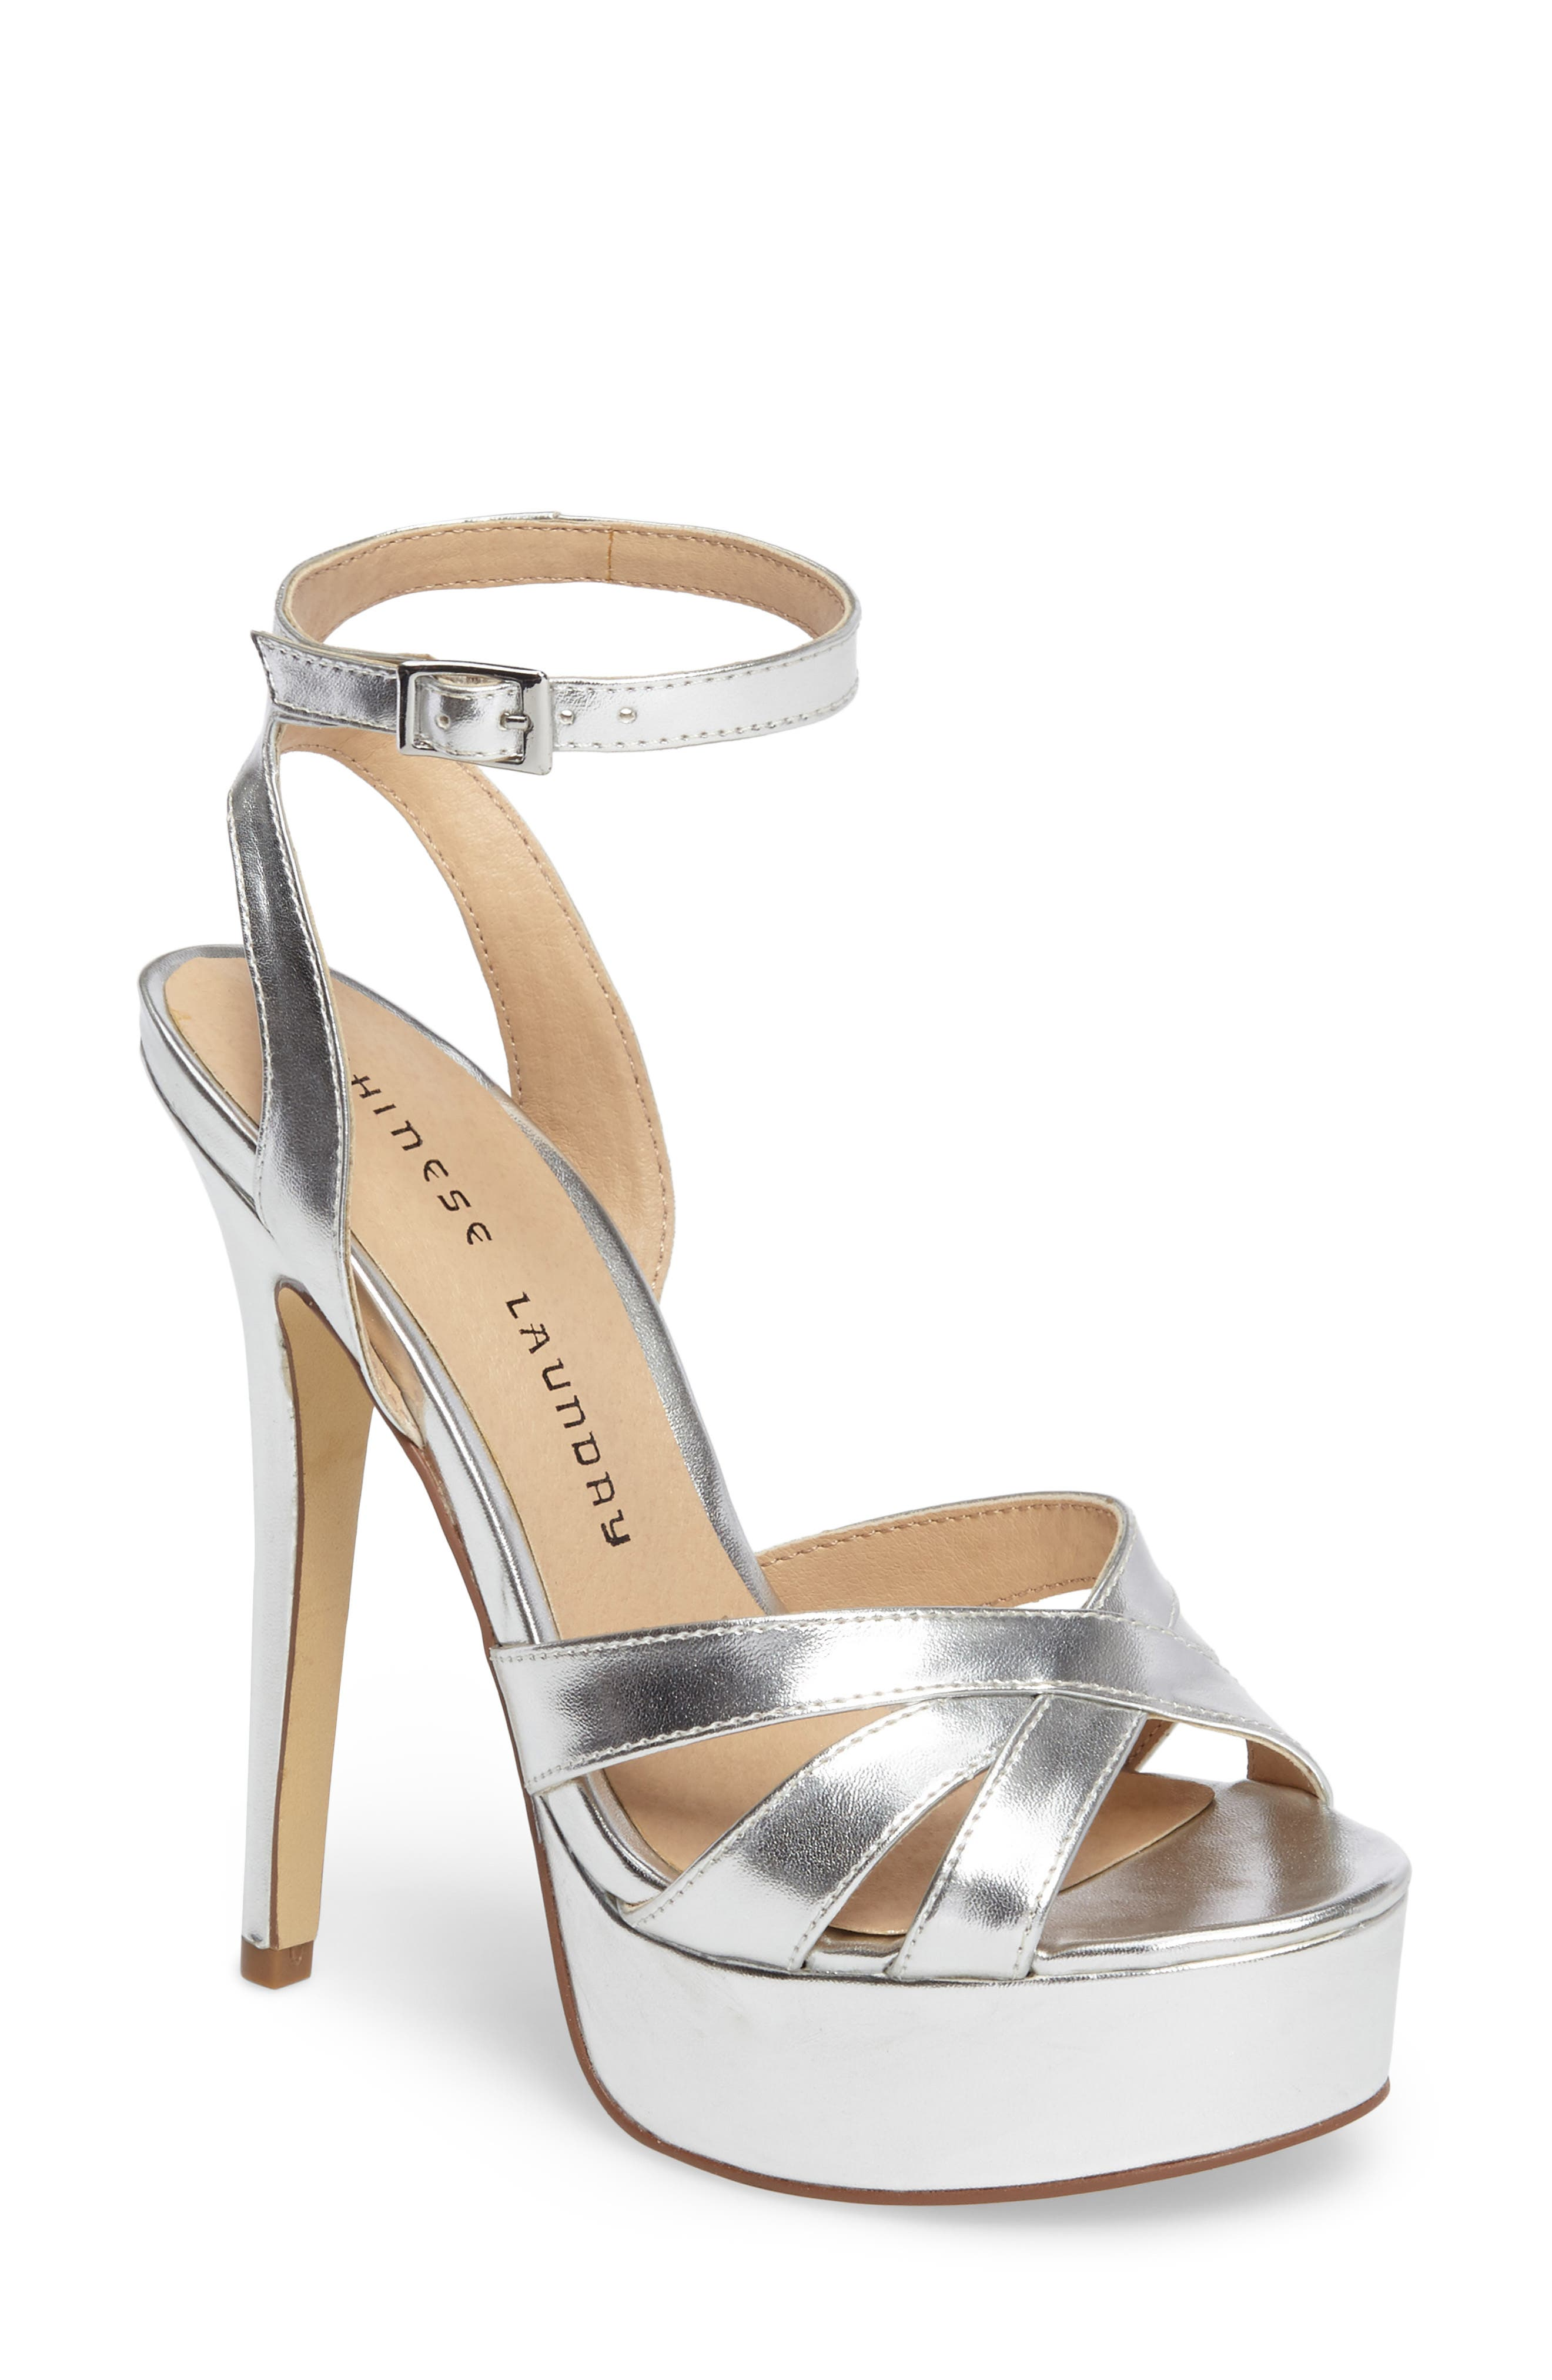 Alyssa Strappy Platform Sandal,                         Main,                         color, 040